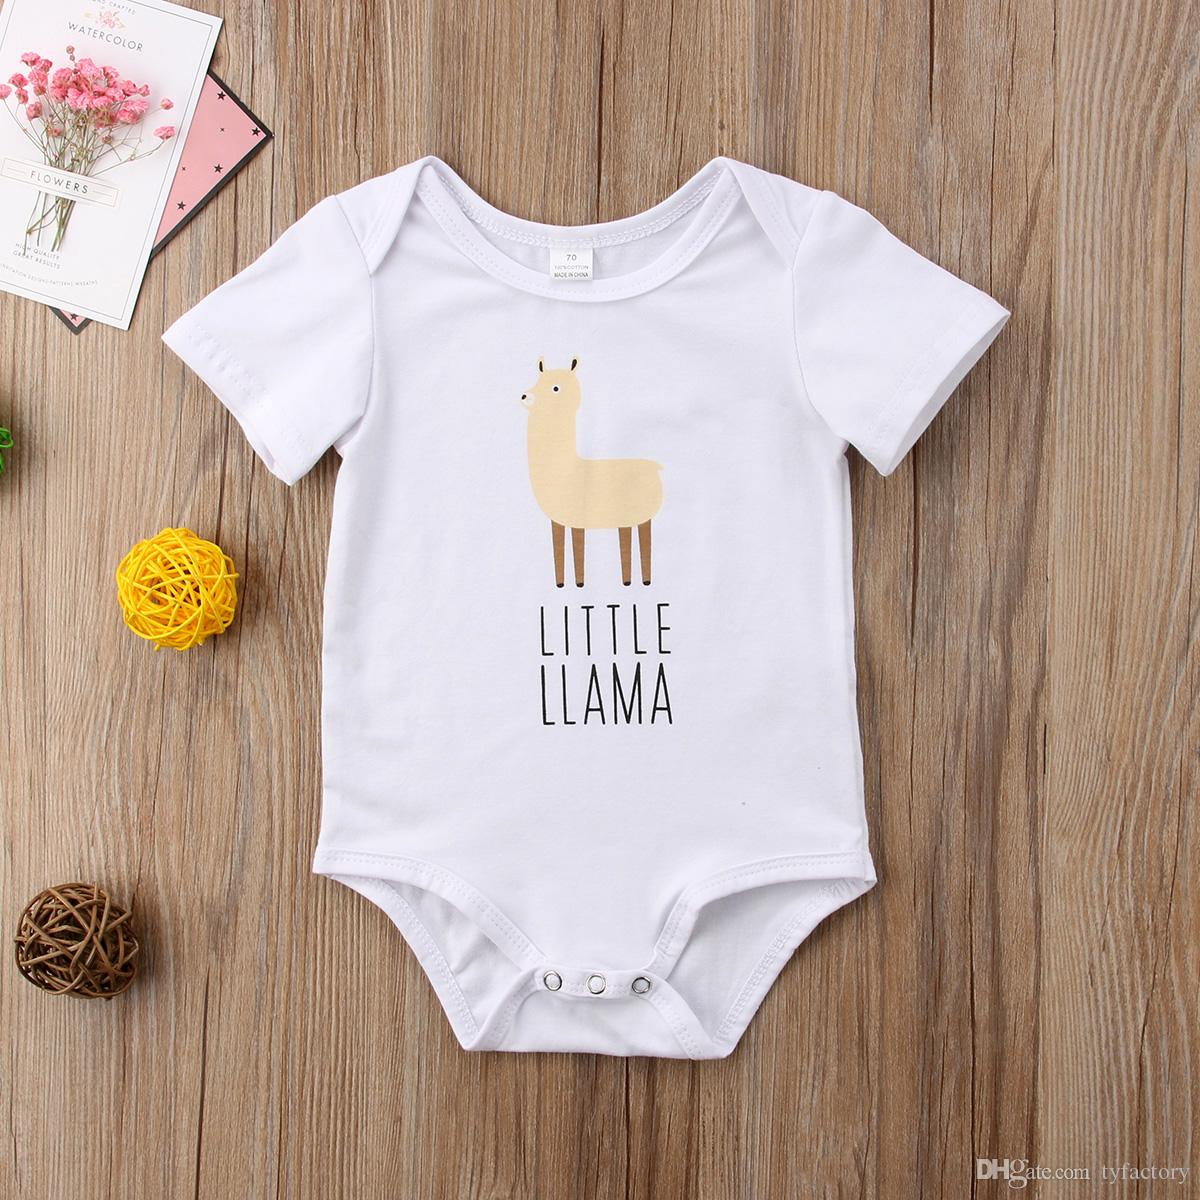 2019 Newborn Baby Boys Girls Onesies Rompers Little Llama Cotton Infant Baby  Costumes Bodysuit Jumpsuits Cute Playsuit Summer Boutique 0 18M From  Tyfactory eba4258e8